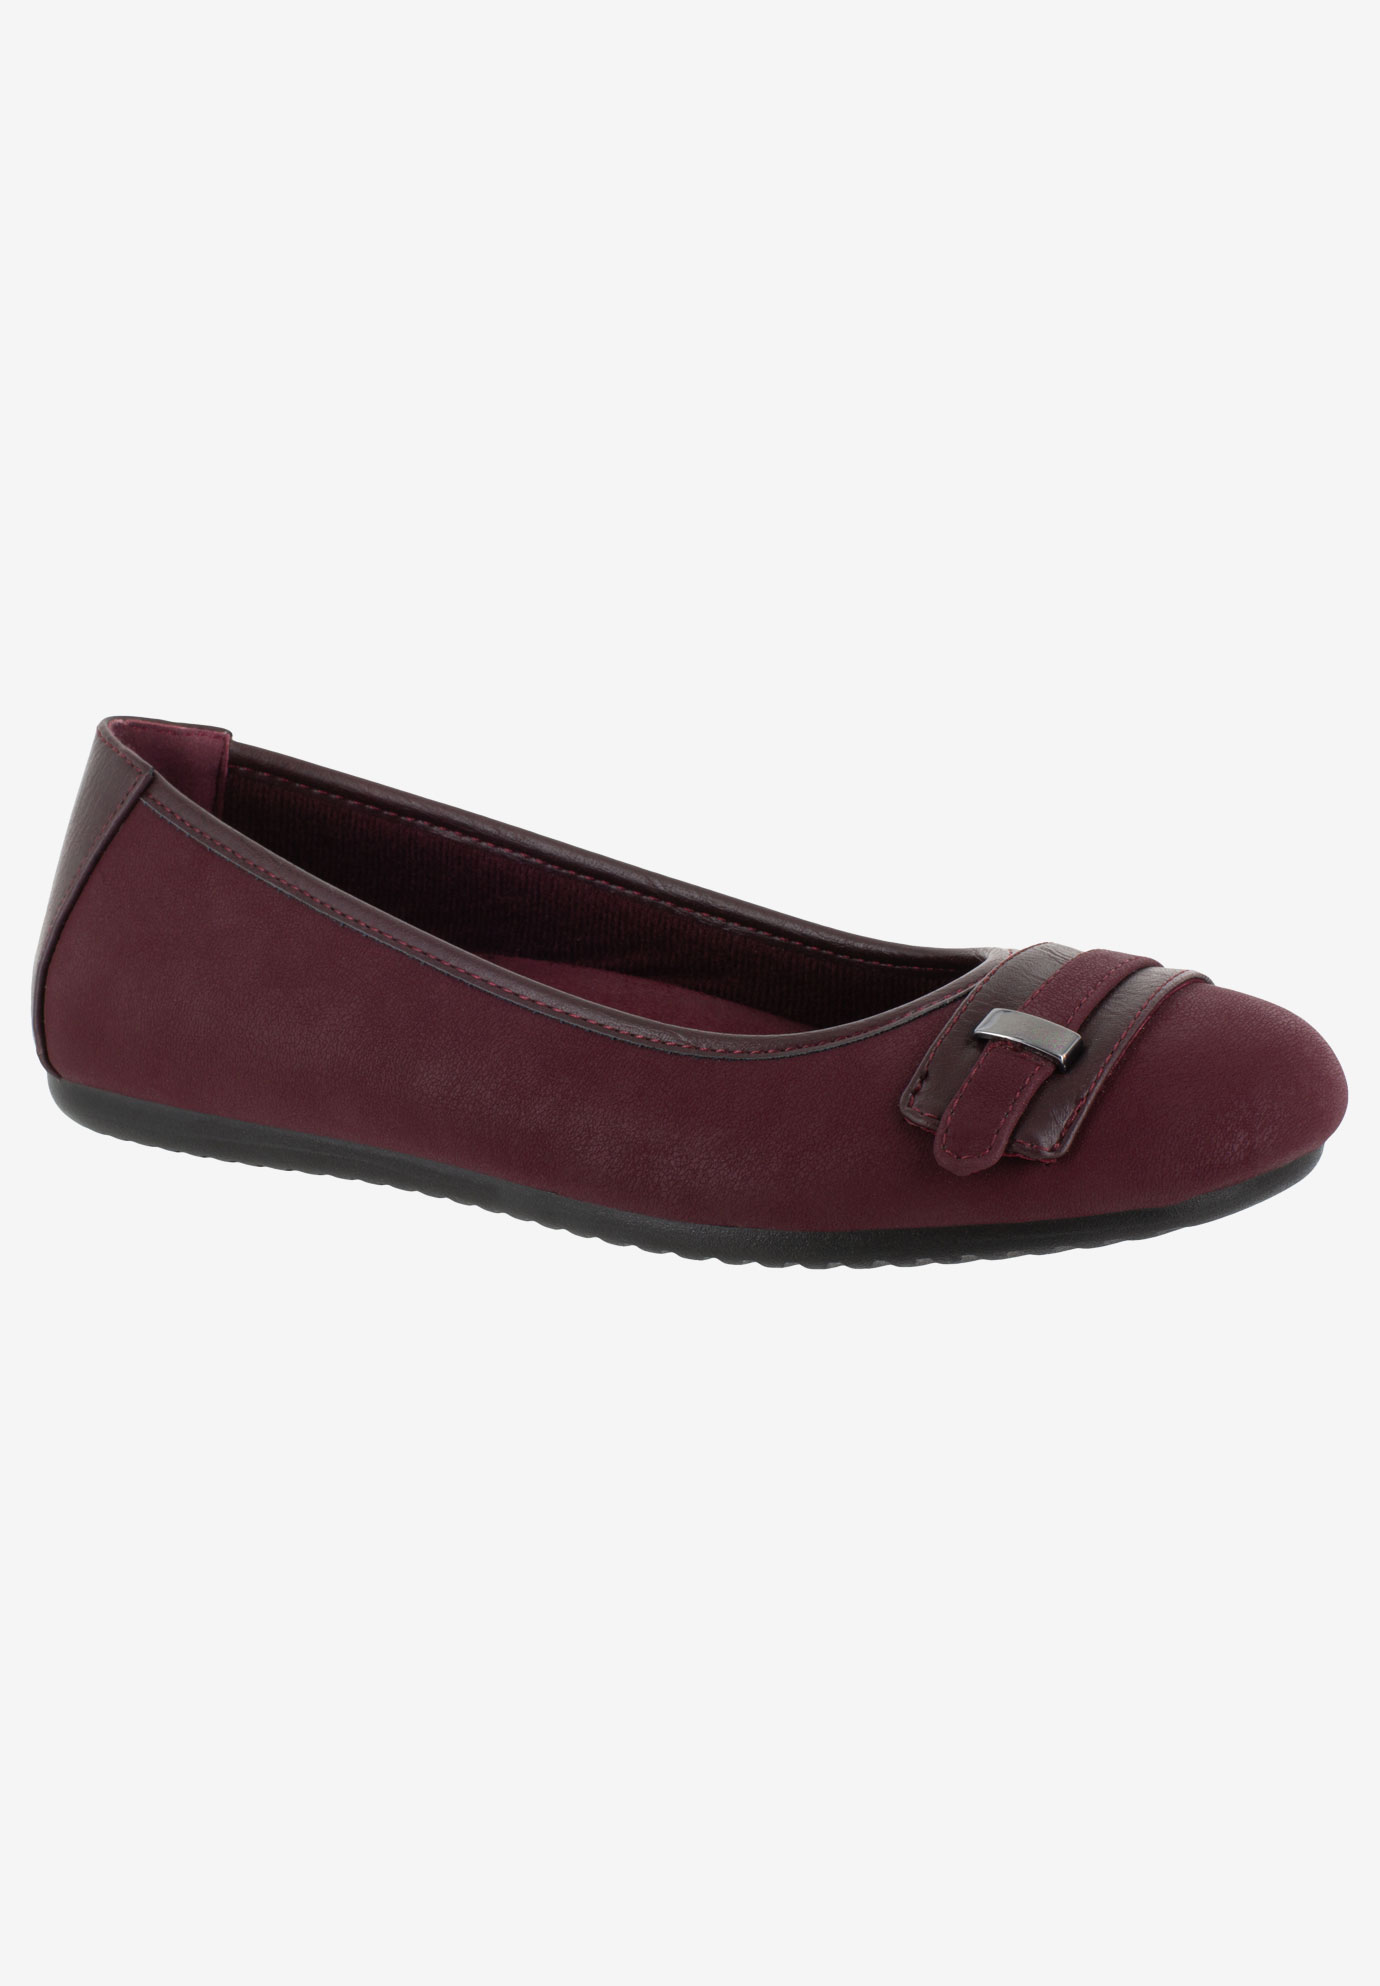 Angie Flat by Easy Street,